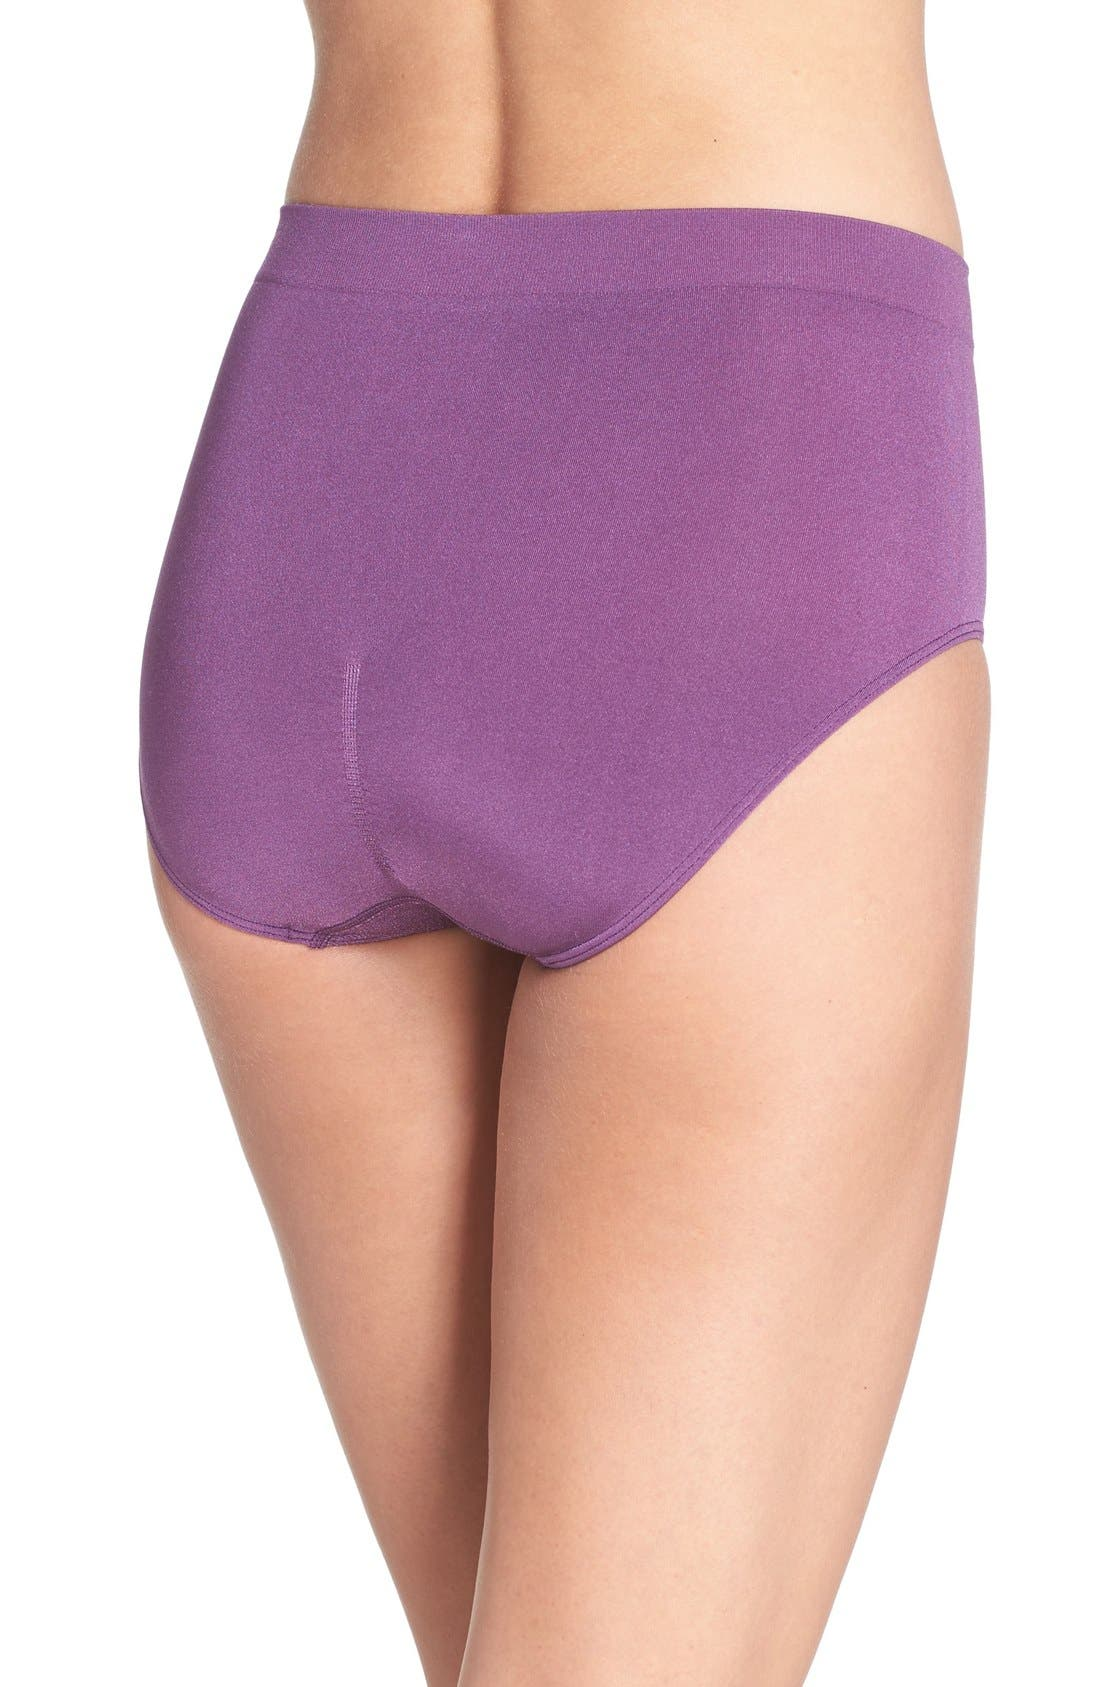 B Smooth Briefs,                             Alternate thumbnail 134, color,